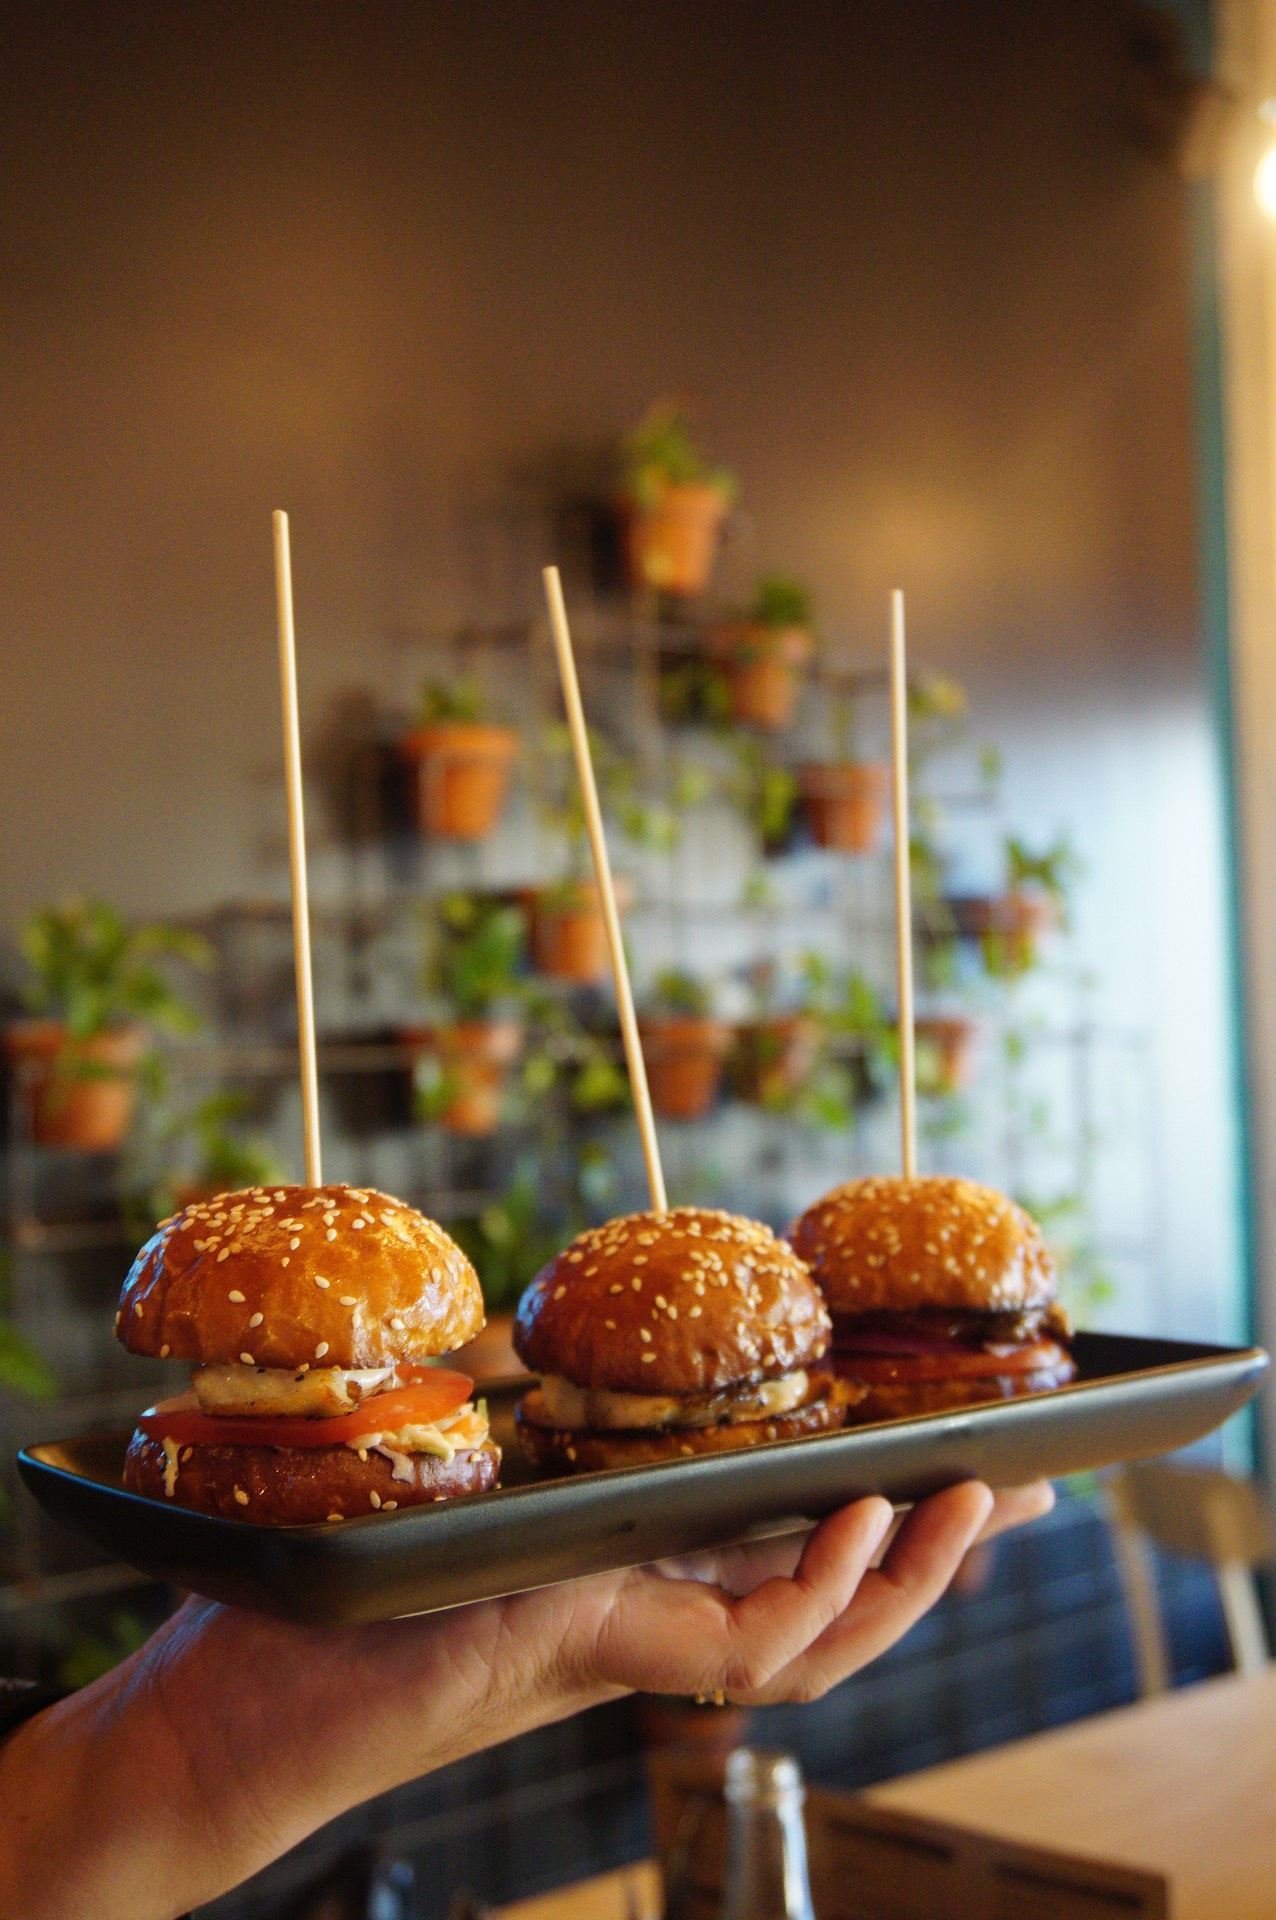 $12 sliders of fish, chicken and lamb (L-R)